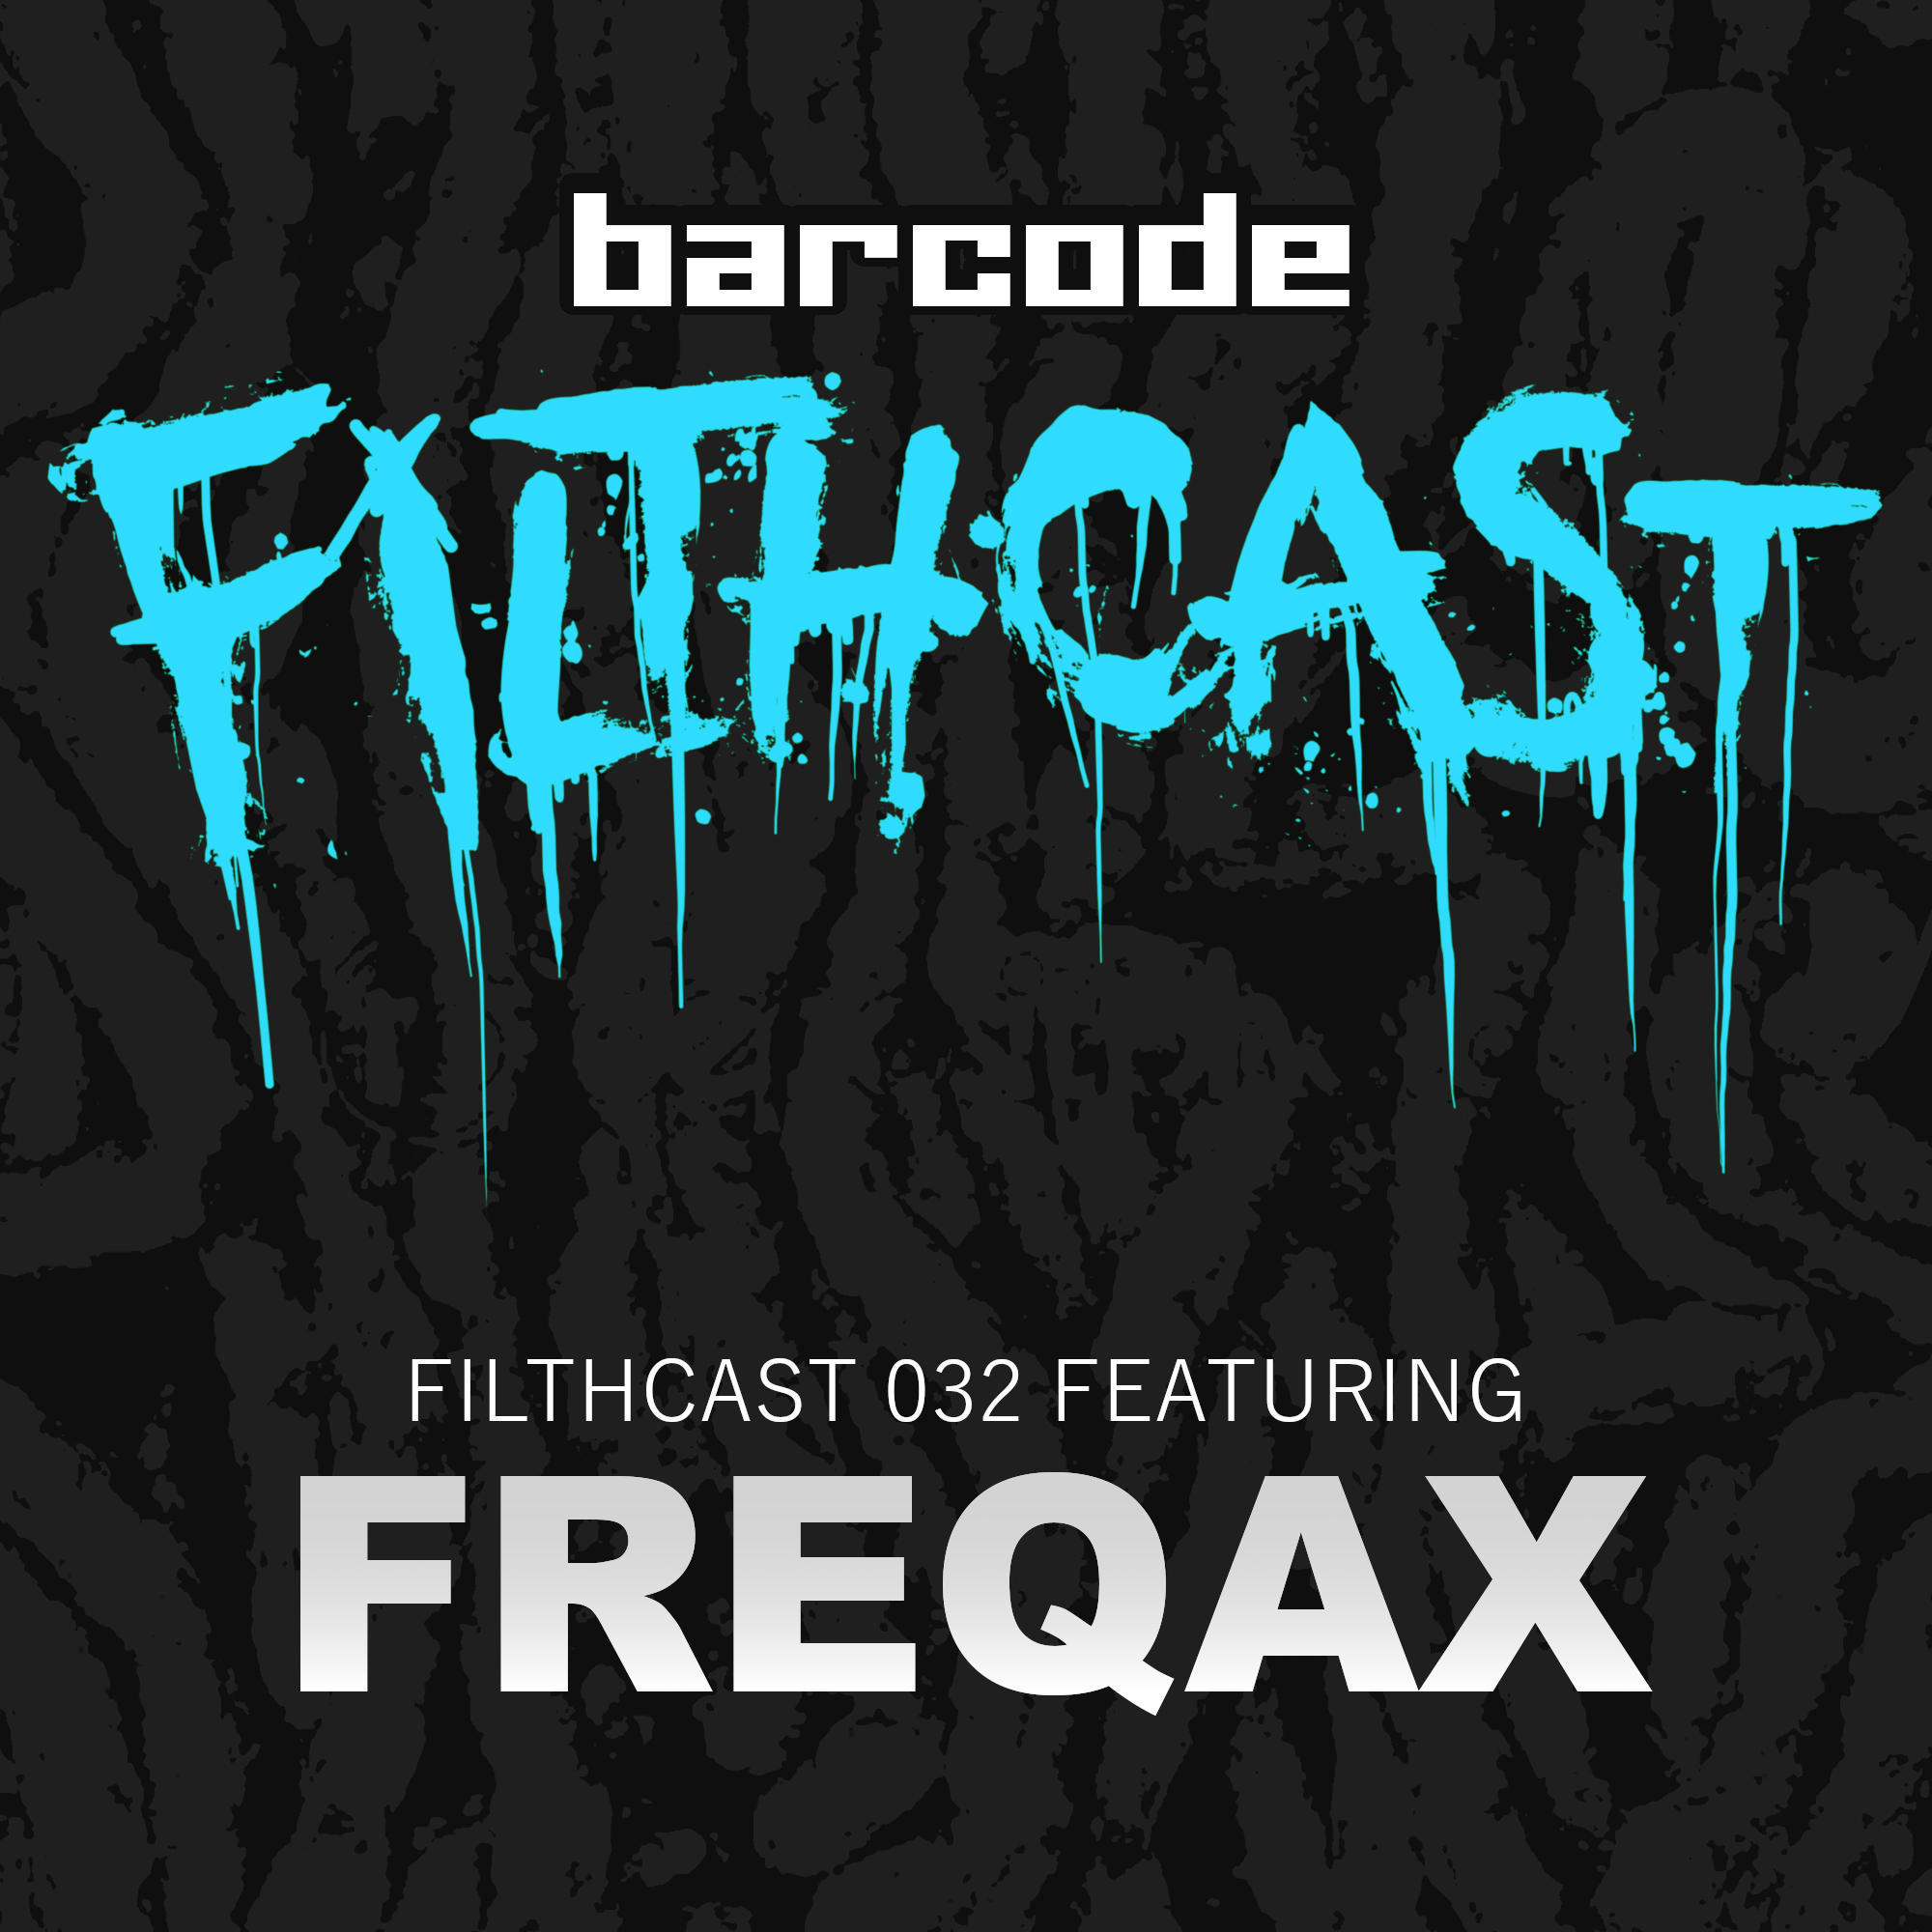 Kicking your face off with this month's Filthcast is Romanian duo, Freqax. Adrenaline and Weirdo first formed Freqax back in 2008 and have since become one of the most exciting new groups within the scene.